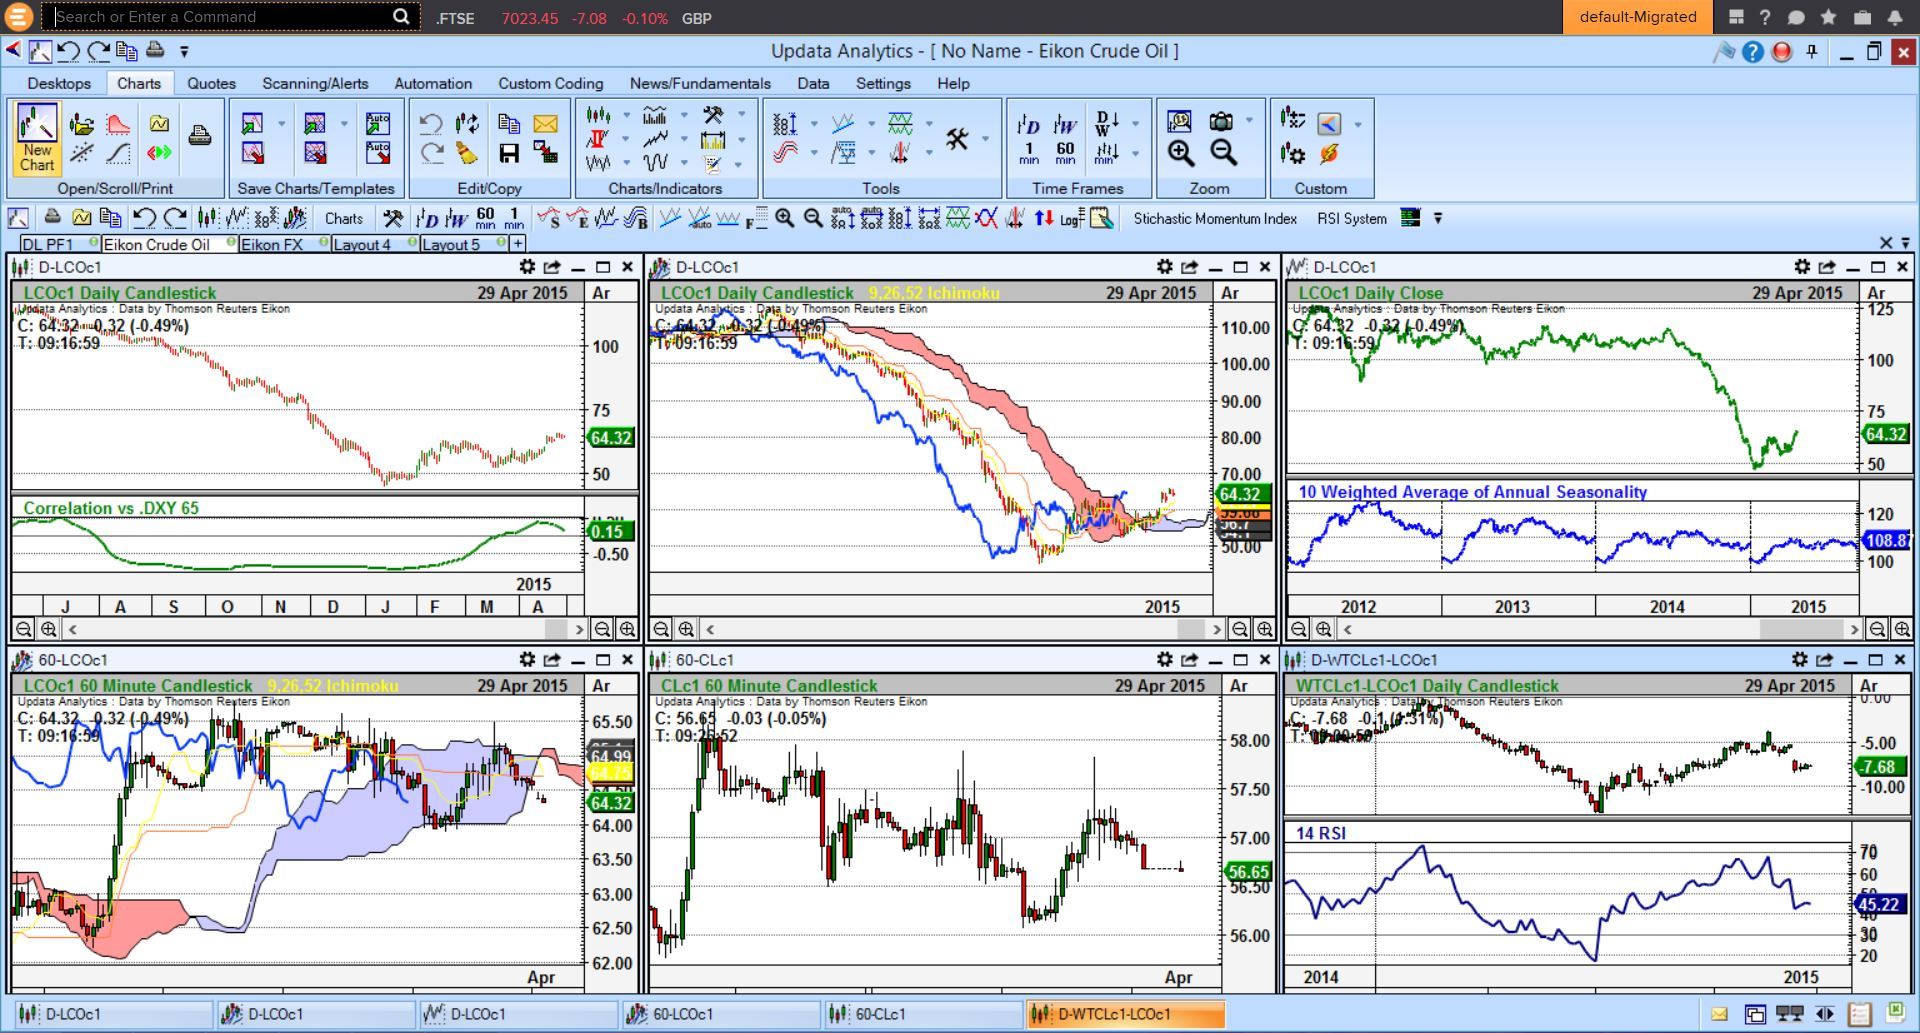 Add powerful chart analytics to Eikon with the most advanced technical analysis you'll find